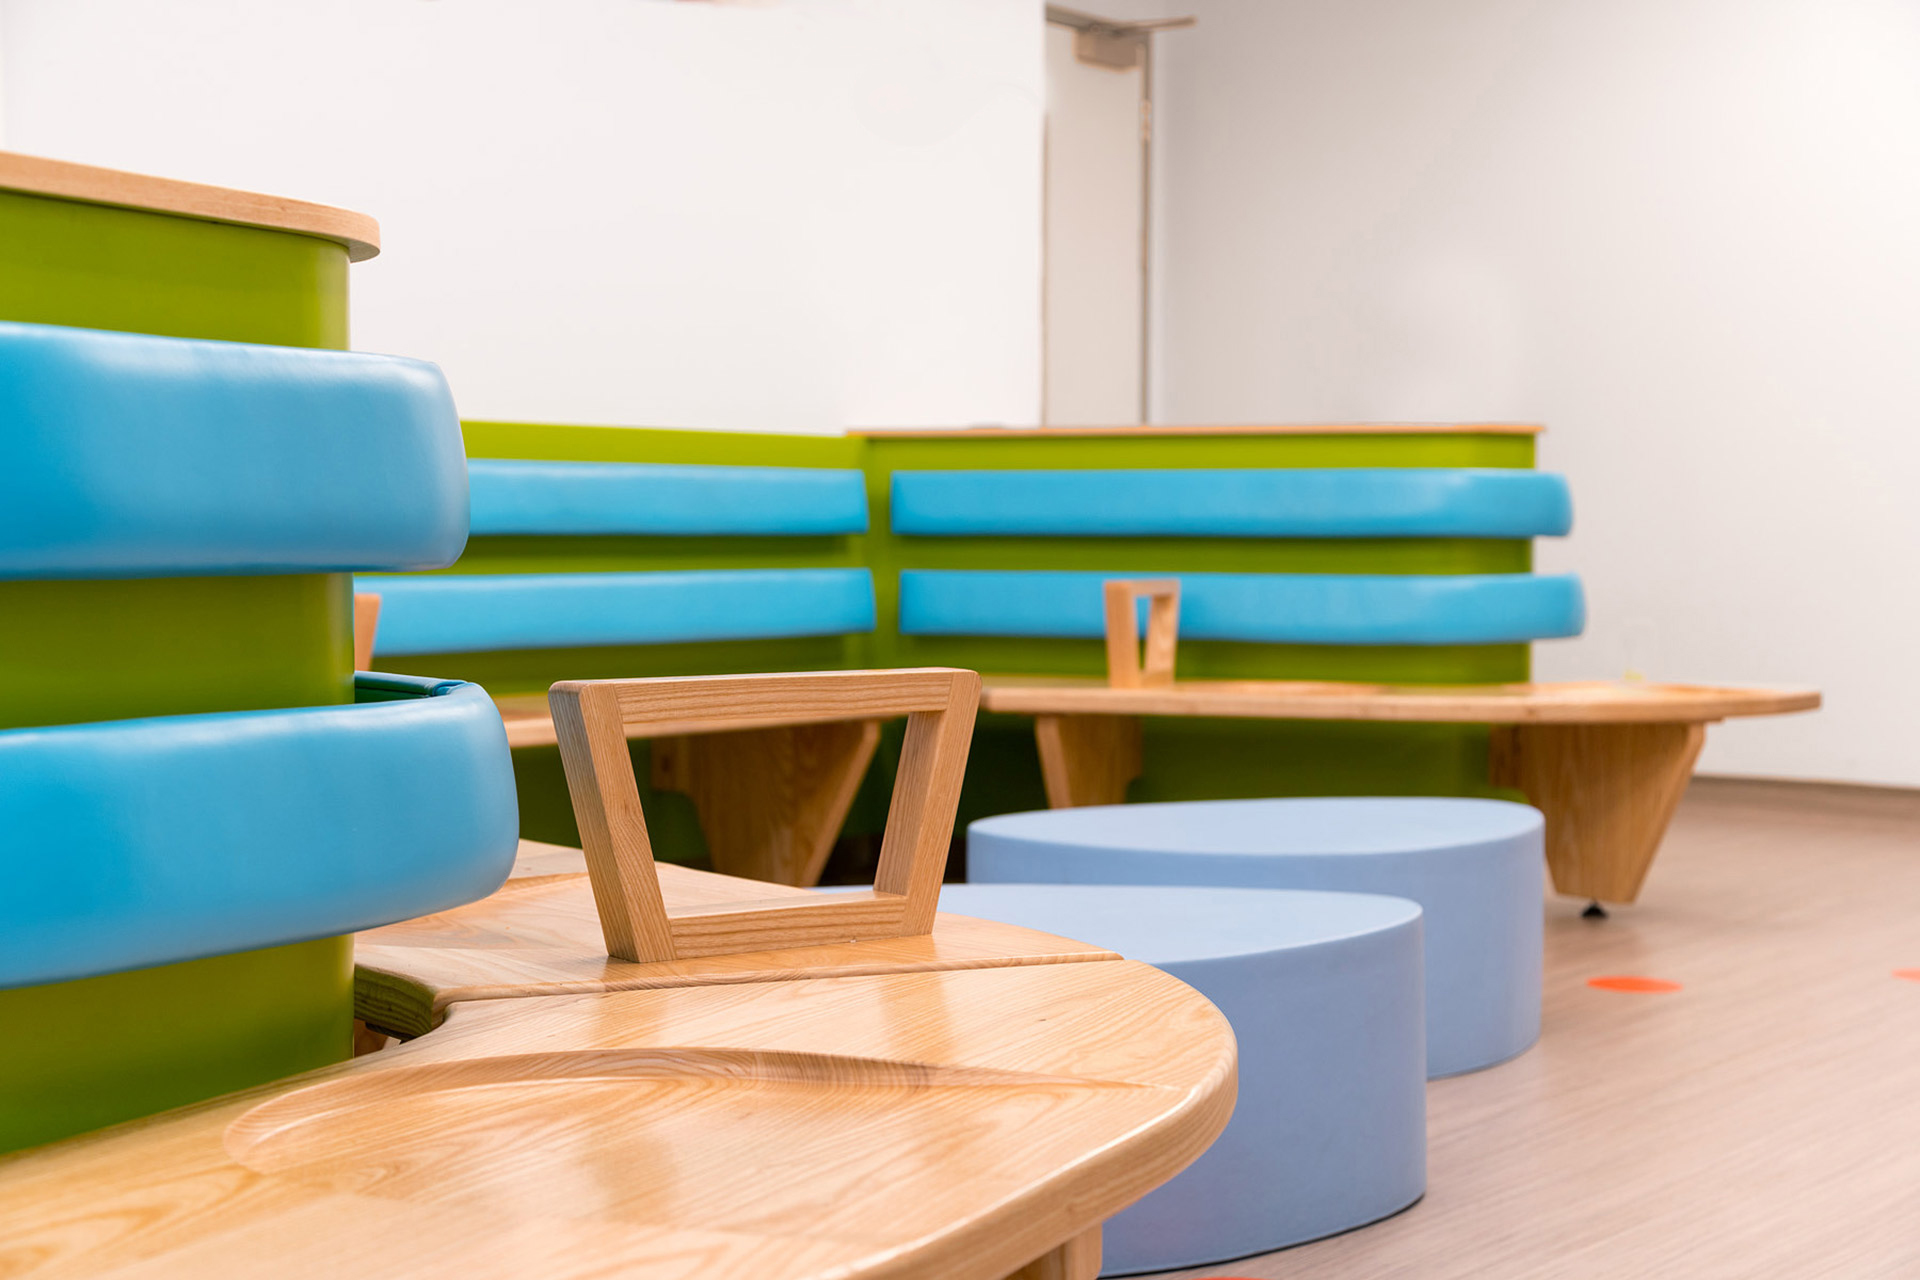 contour seating provides areas for individuals or groups to sit